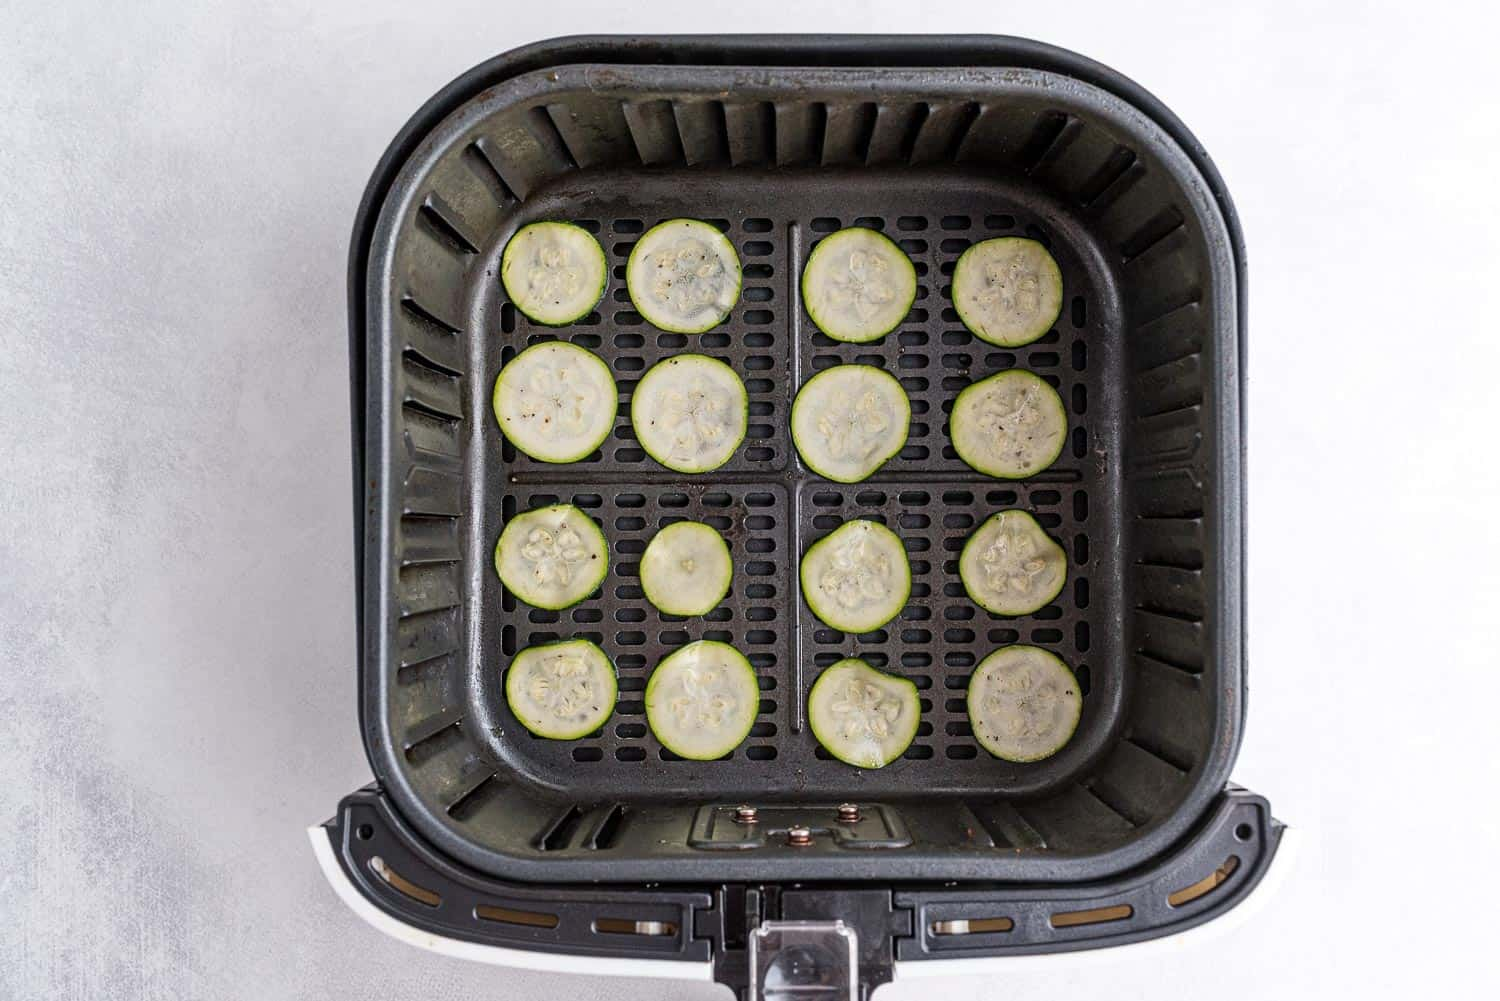 Zucchini in the basket of an air fryer.